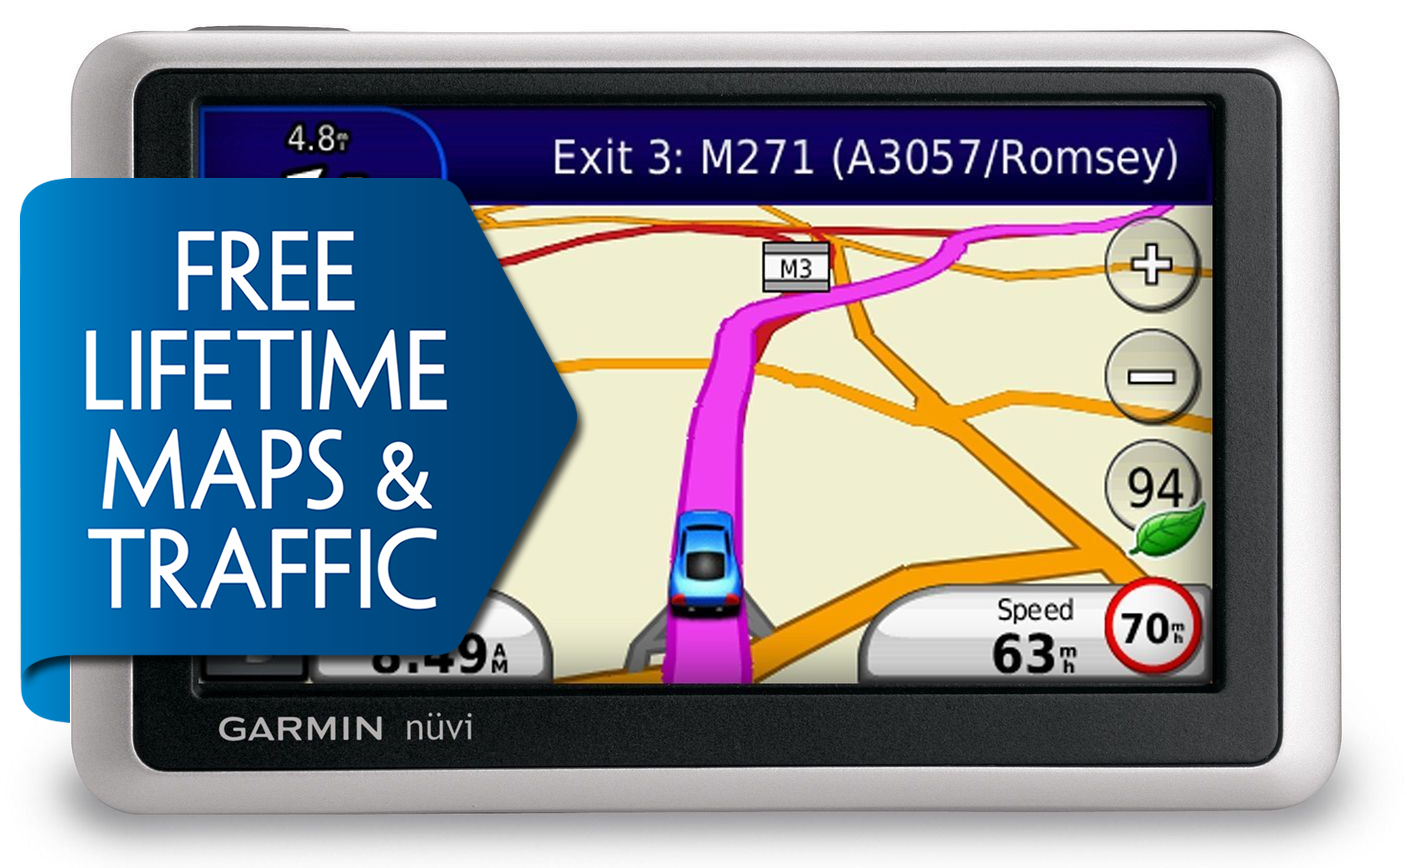 garmin nuvi maps europe free download with 291010758388 on 27077301 likewise Map Download Site Europe Garmin Nuvi Free furthermore Garmin Uk Map Updates 2 likewise Map Of Iran And Afghanistan additionally Free Garmin Maps Free Garmin Map Updates.